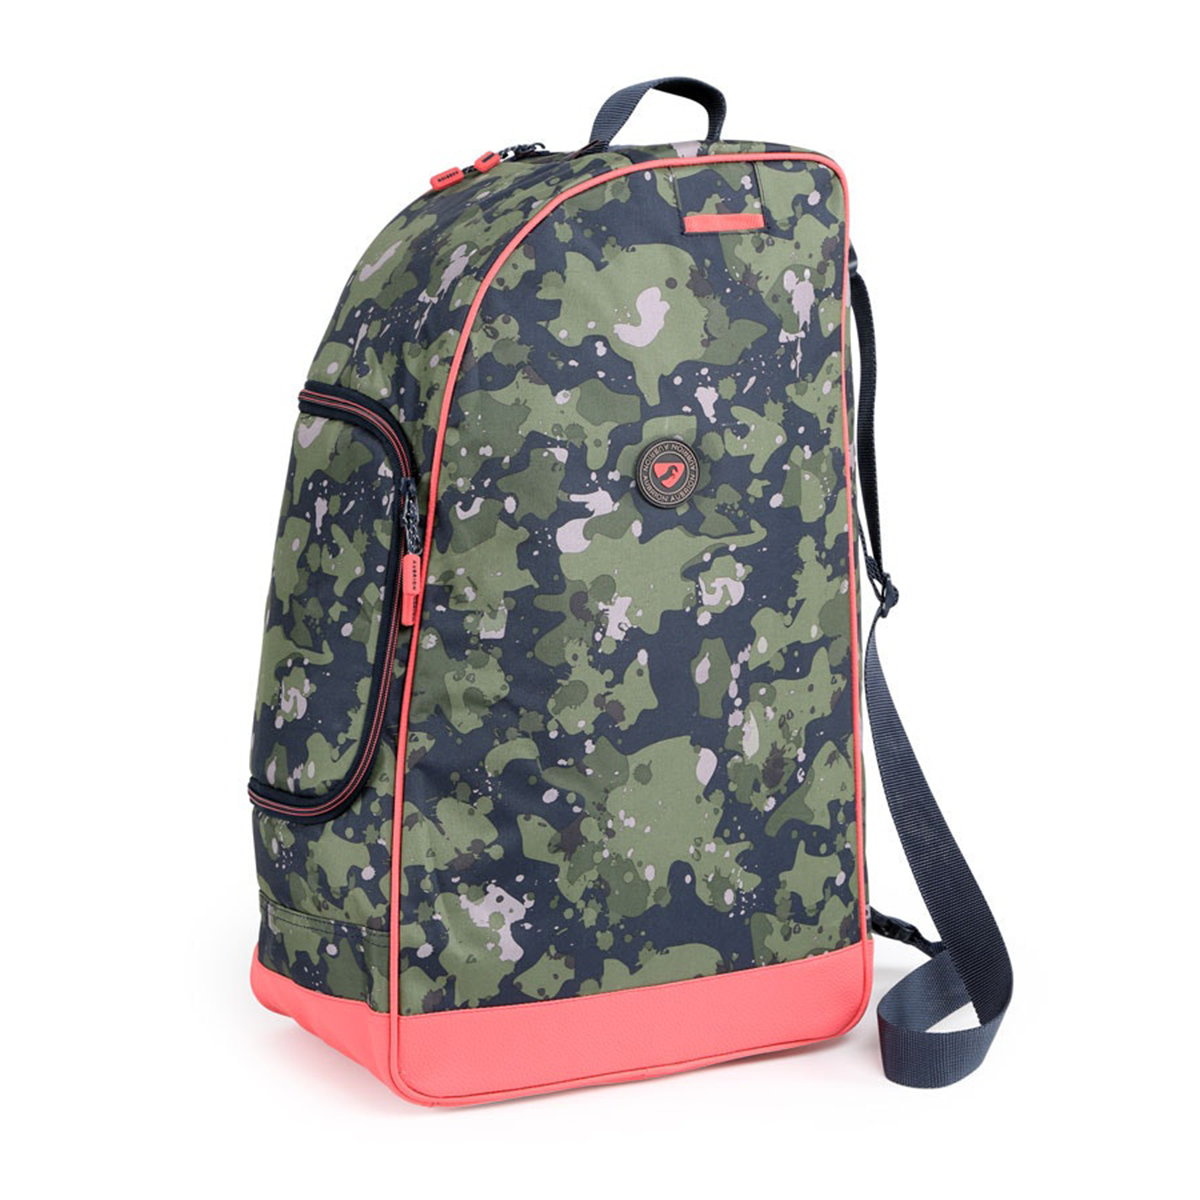 Aubrion Camo Boot, Helmet, Whip Bag